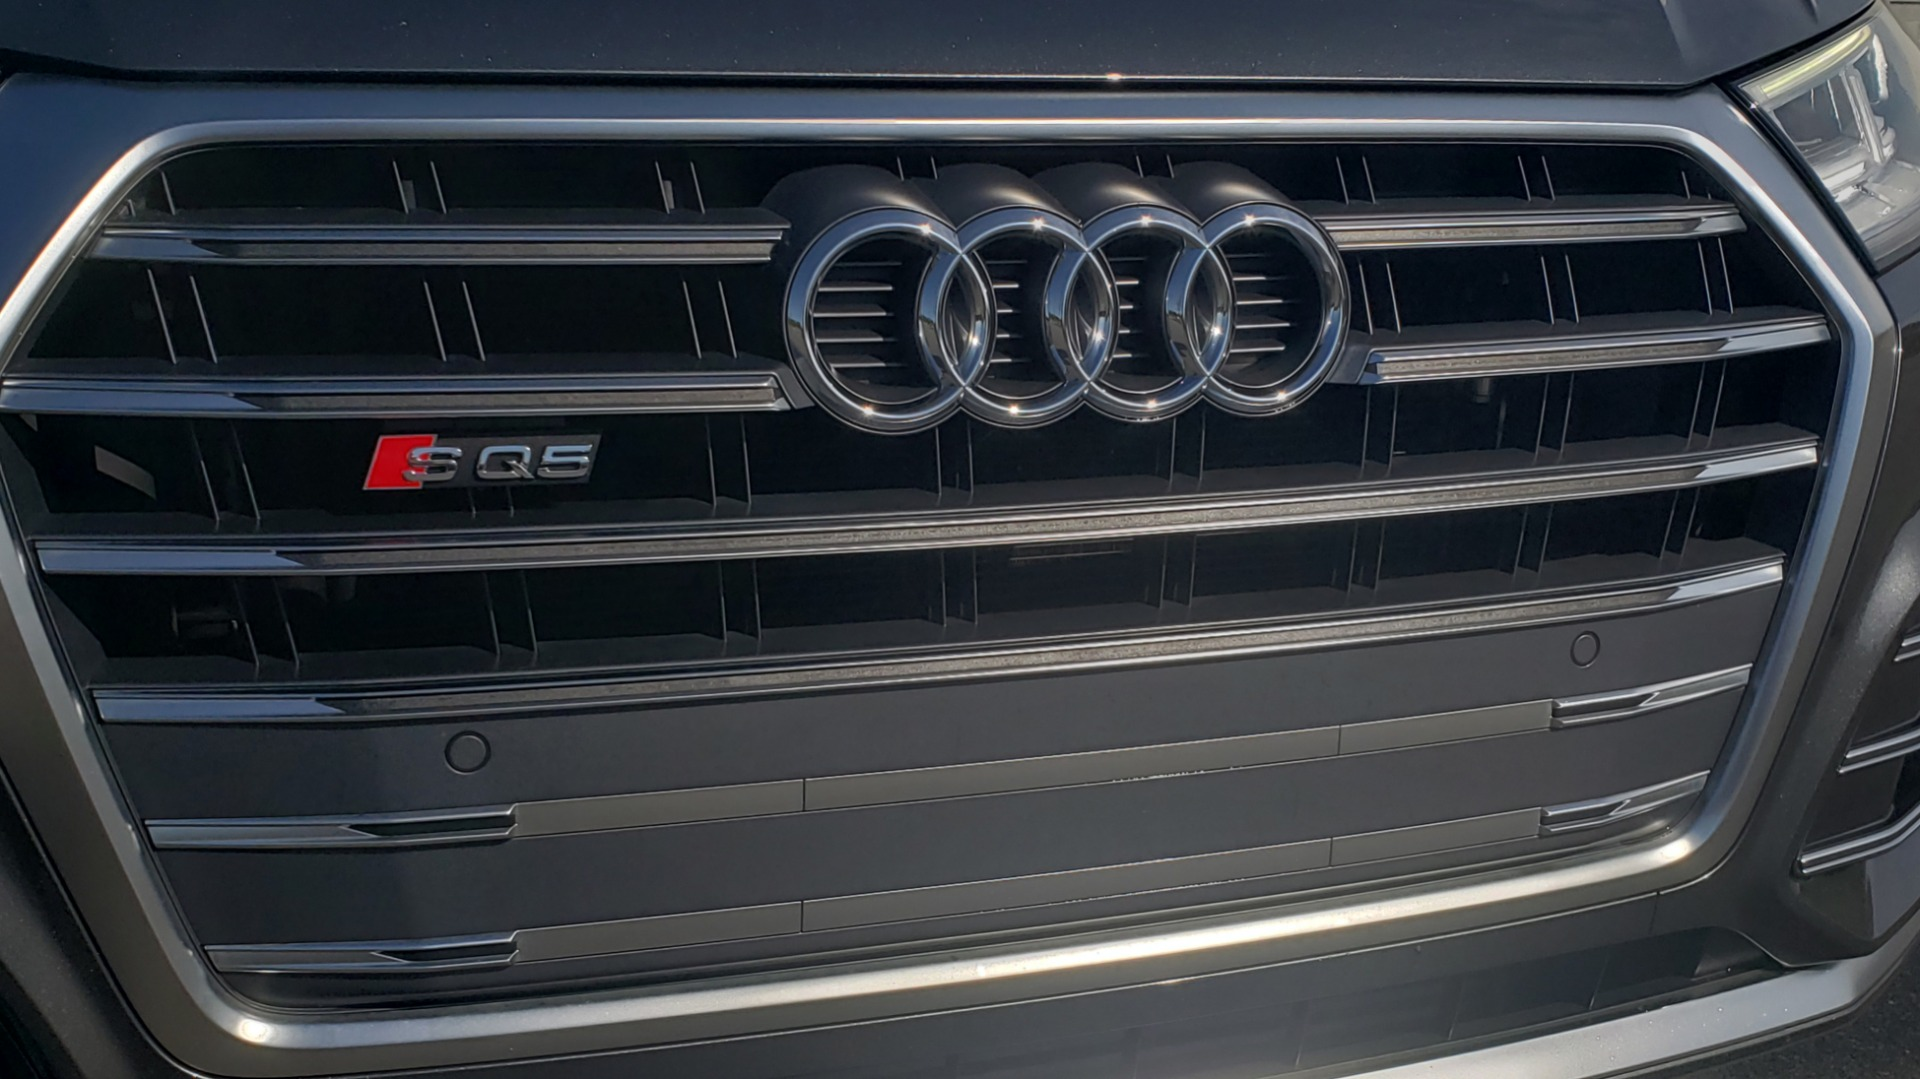 Used 2018 Audi SQ5 PREMIUM PLUS SPORT / NAV / B&O SND / SUNROOF / REARVIEW for sale Sold at Formula Imports in Charlotte NC 28227 20